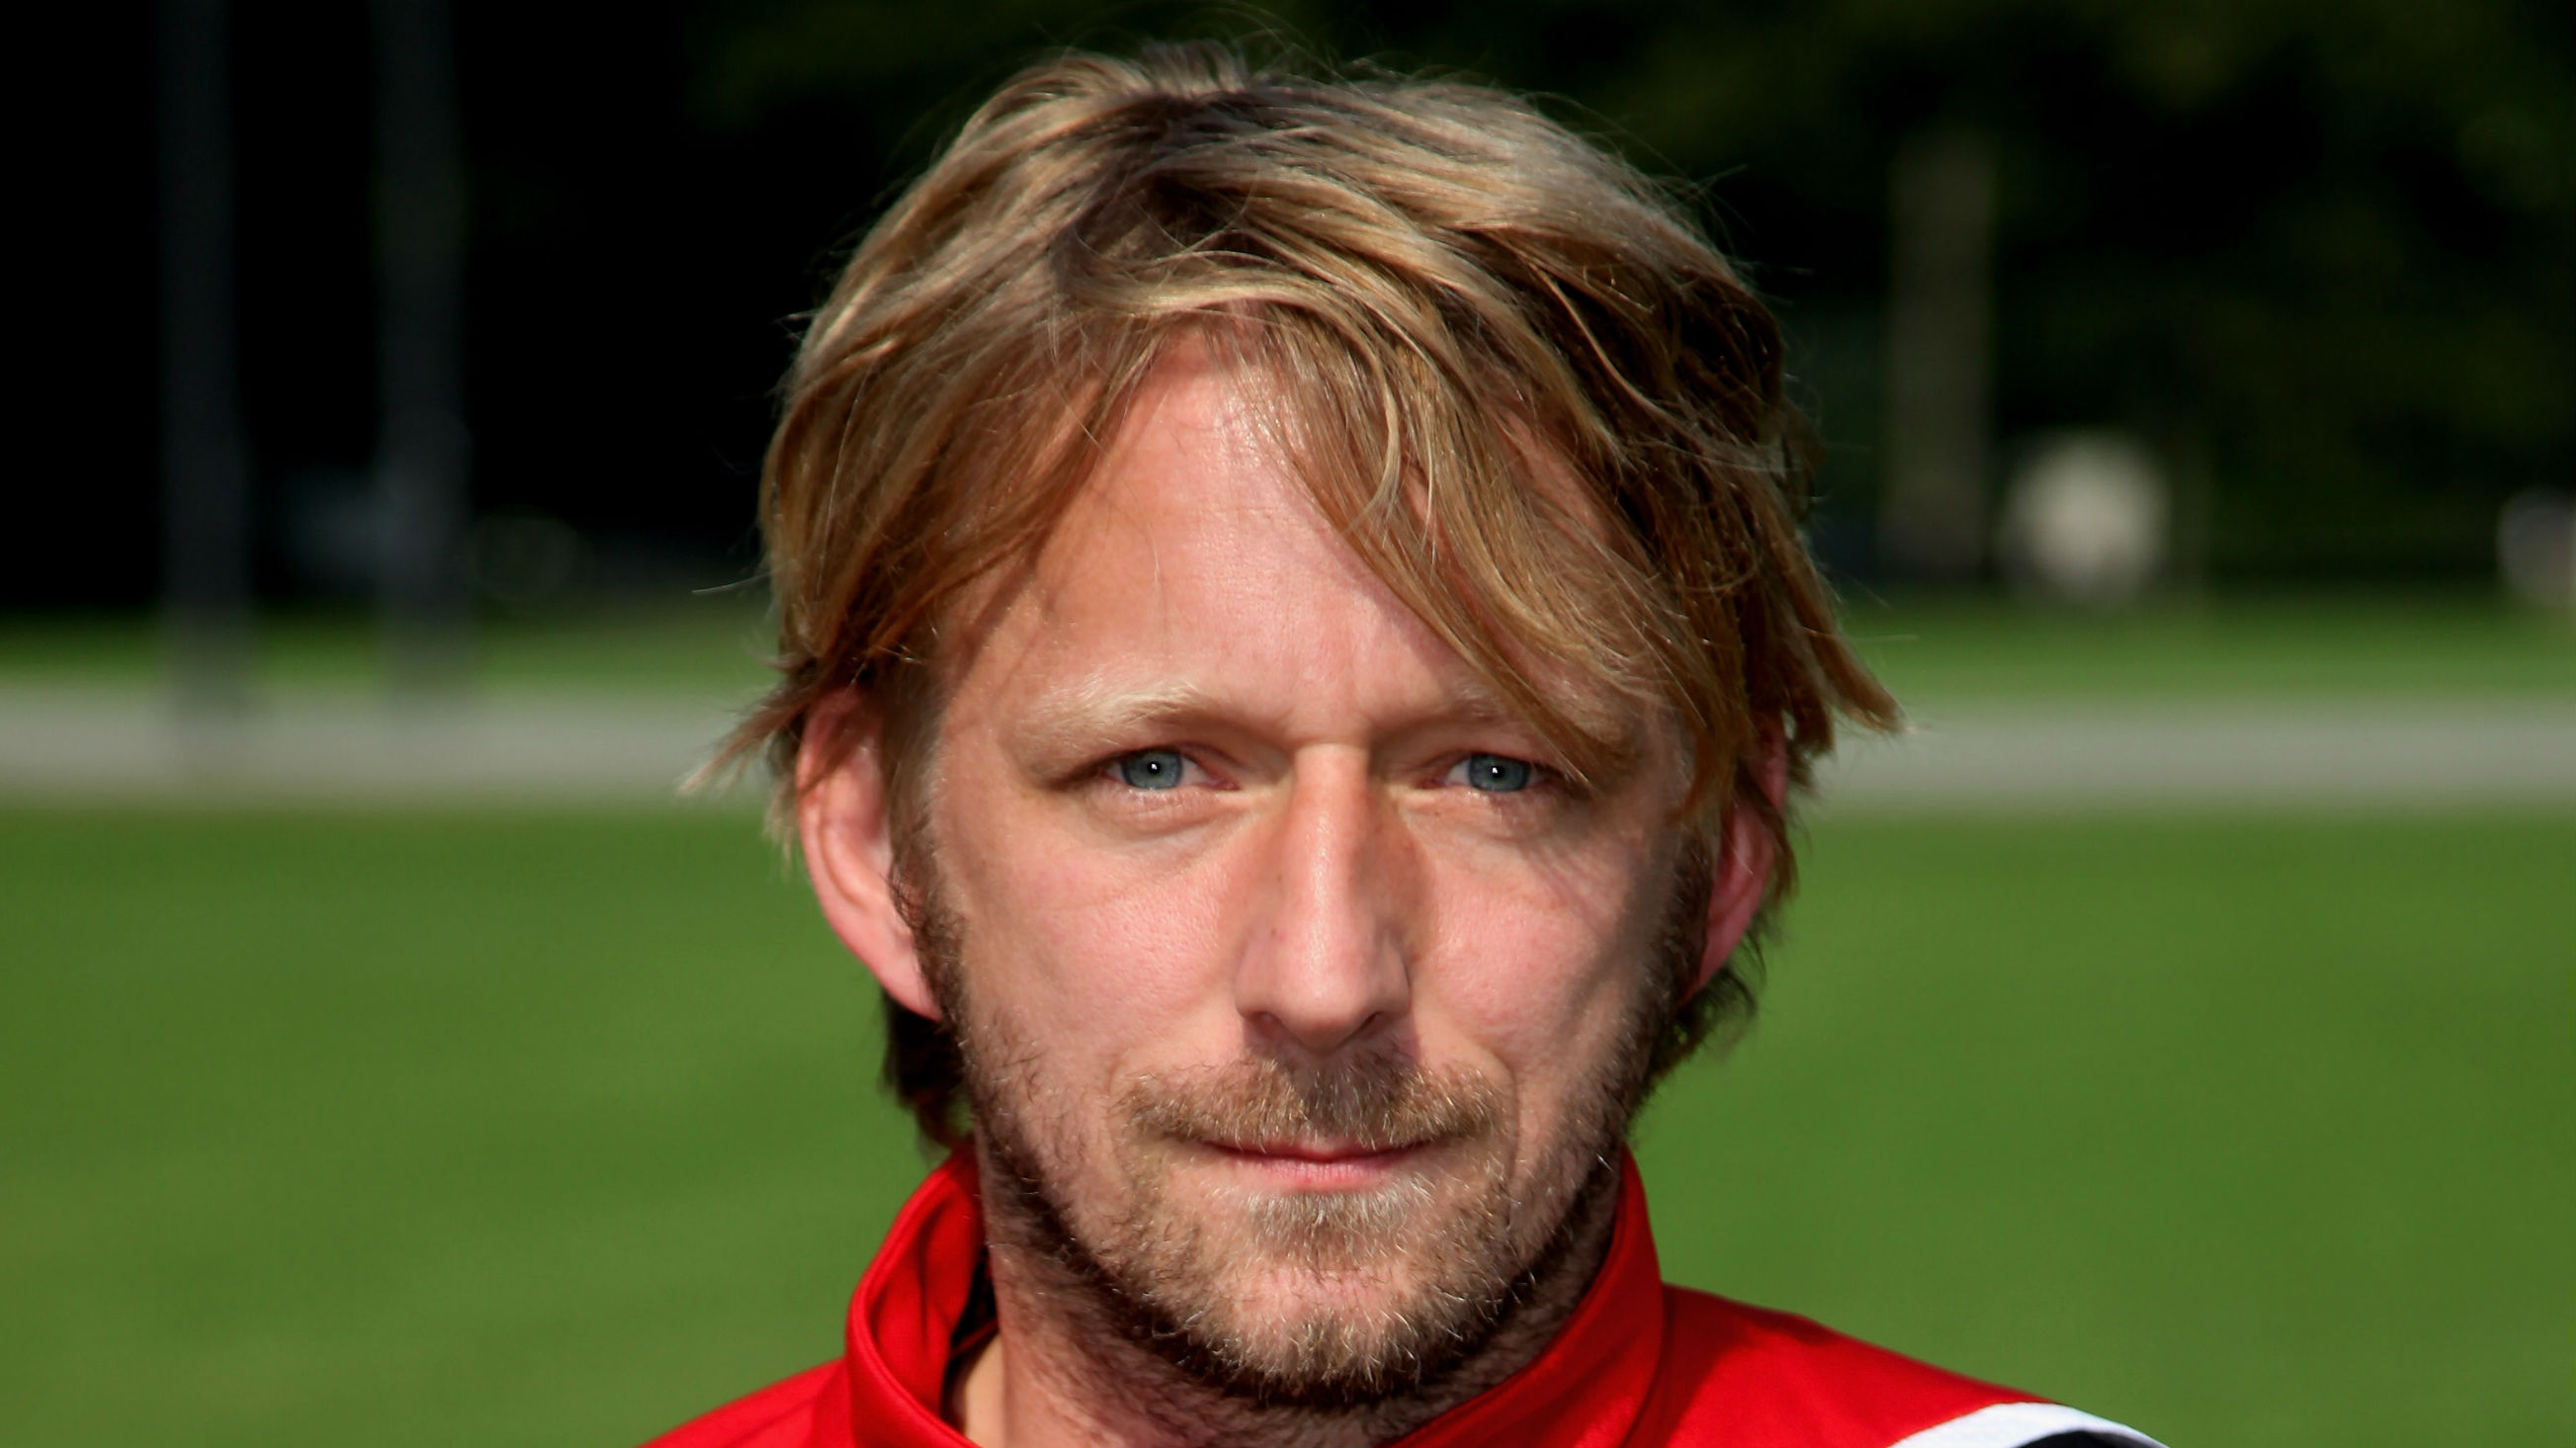 Arsenal appoint ace Dortmund scout Sven Mislintat as head of recruitment